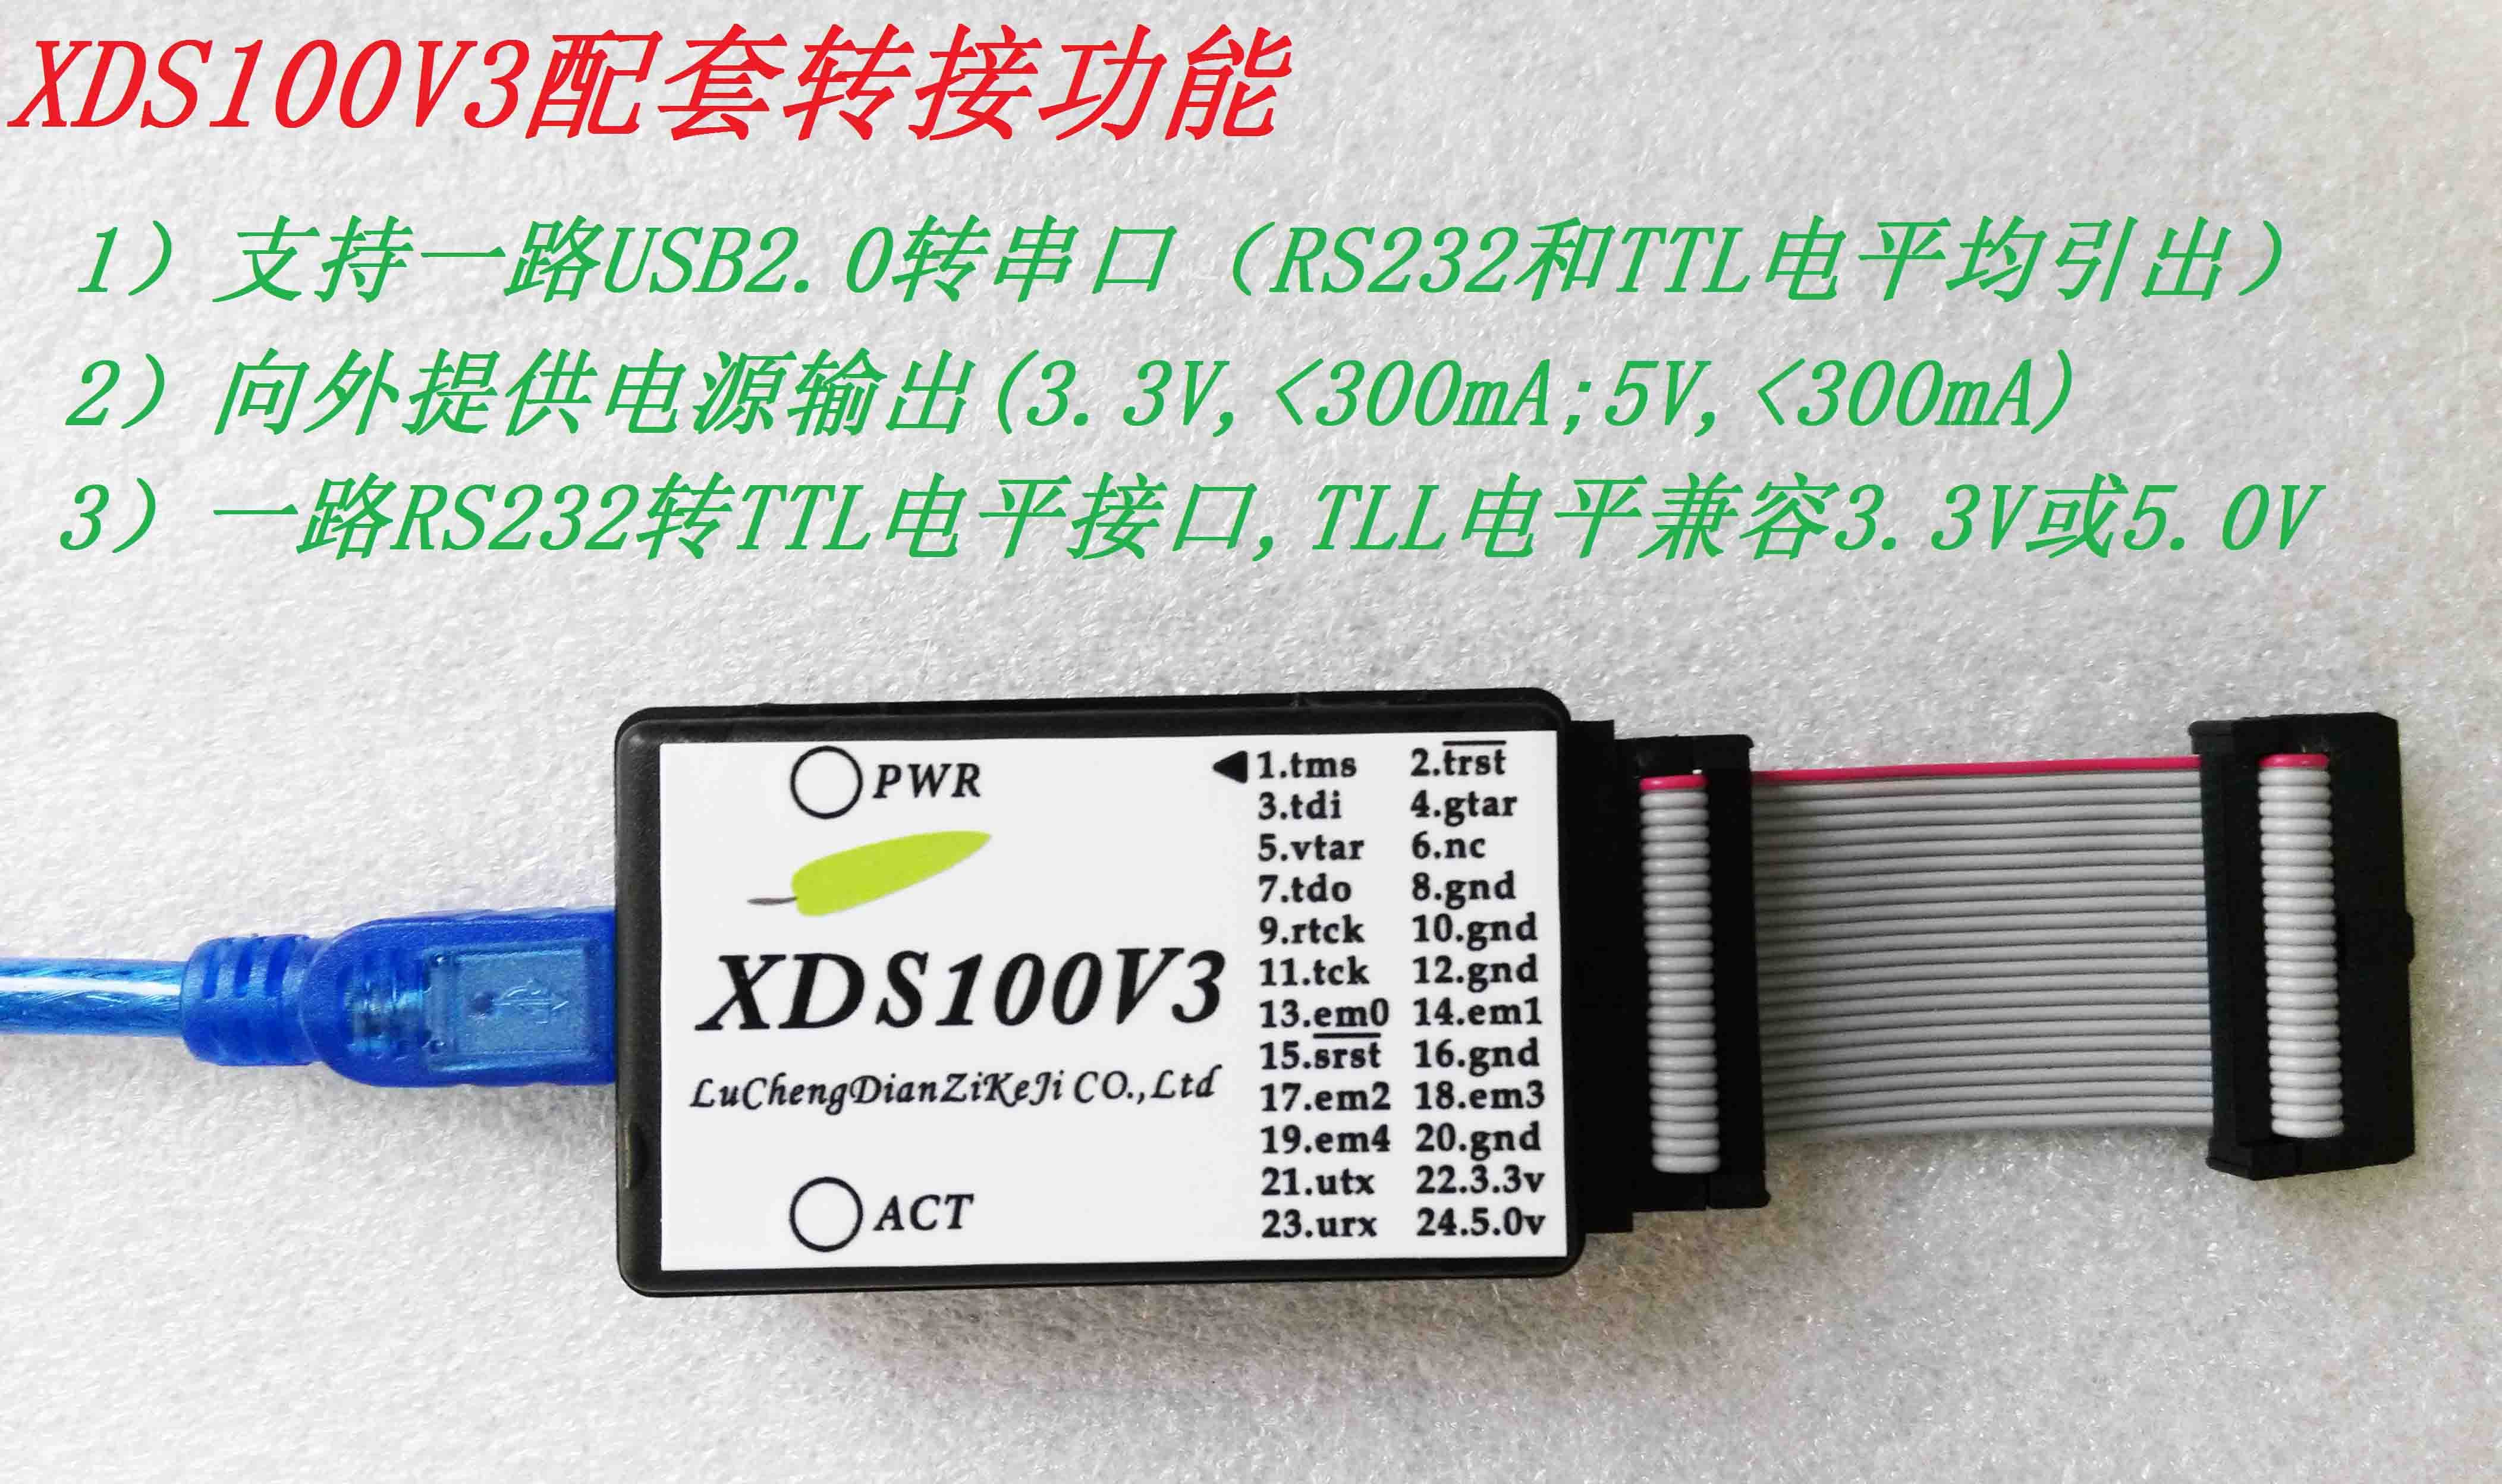 Buy XDS100V3, TI DSP & ARM simulator, simulation, serial port parallel, 5V, 3.3V strong output for only 30 USD